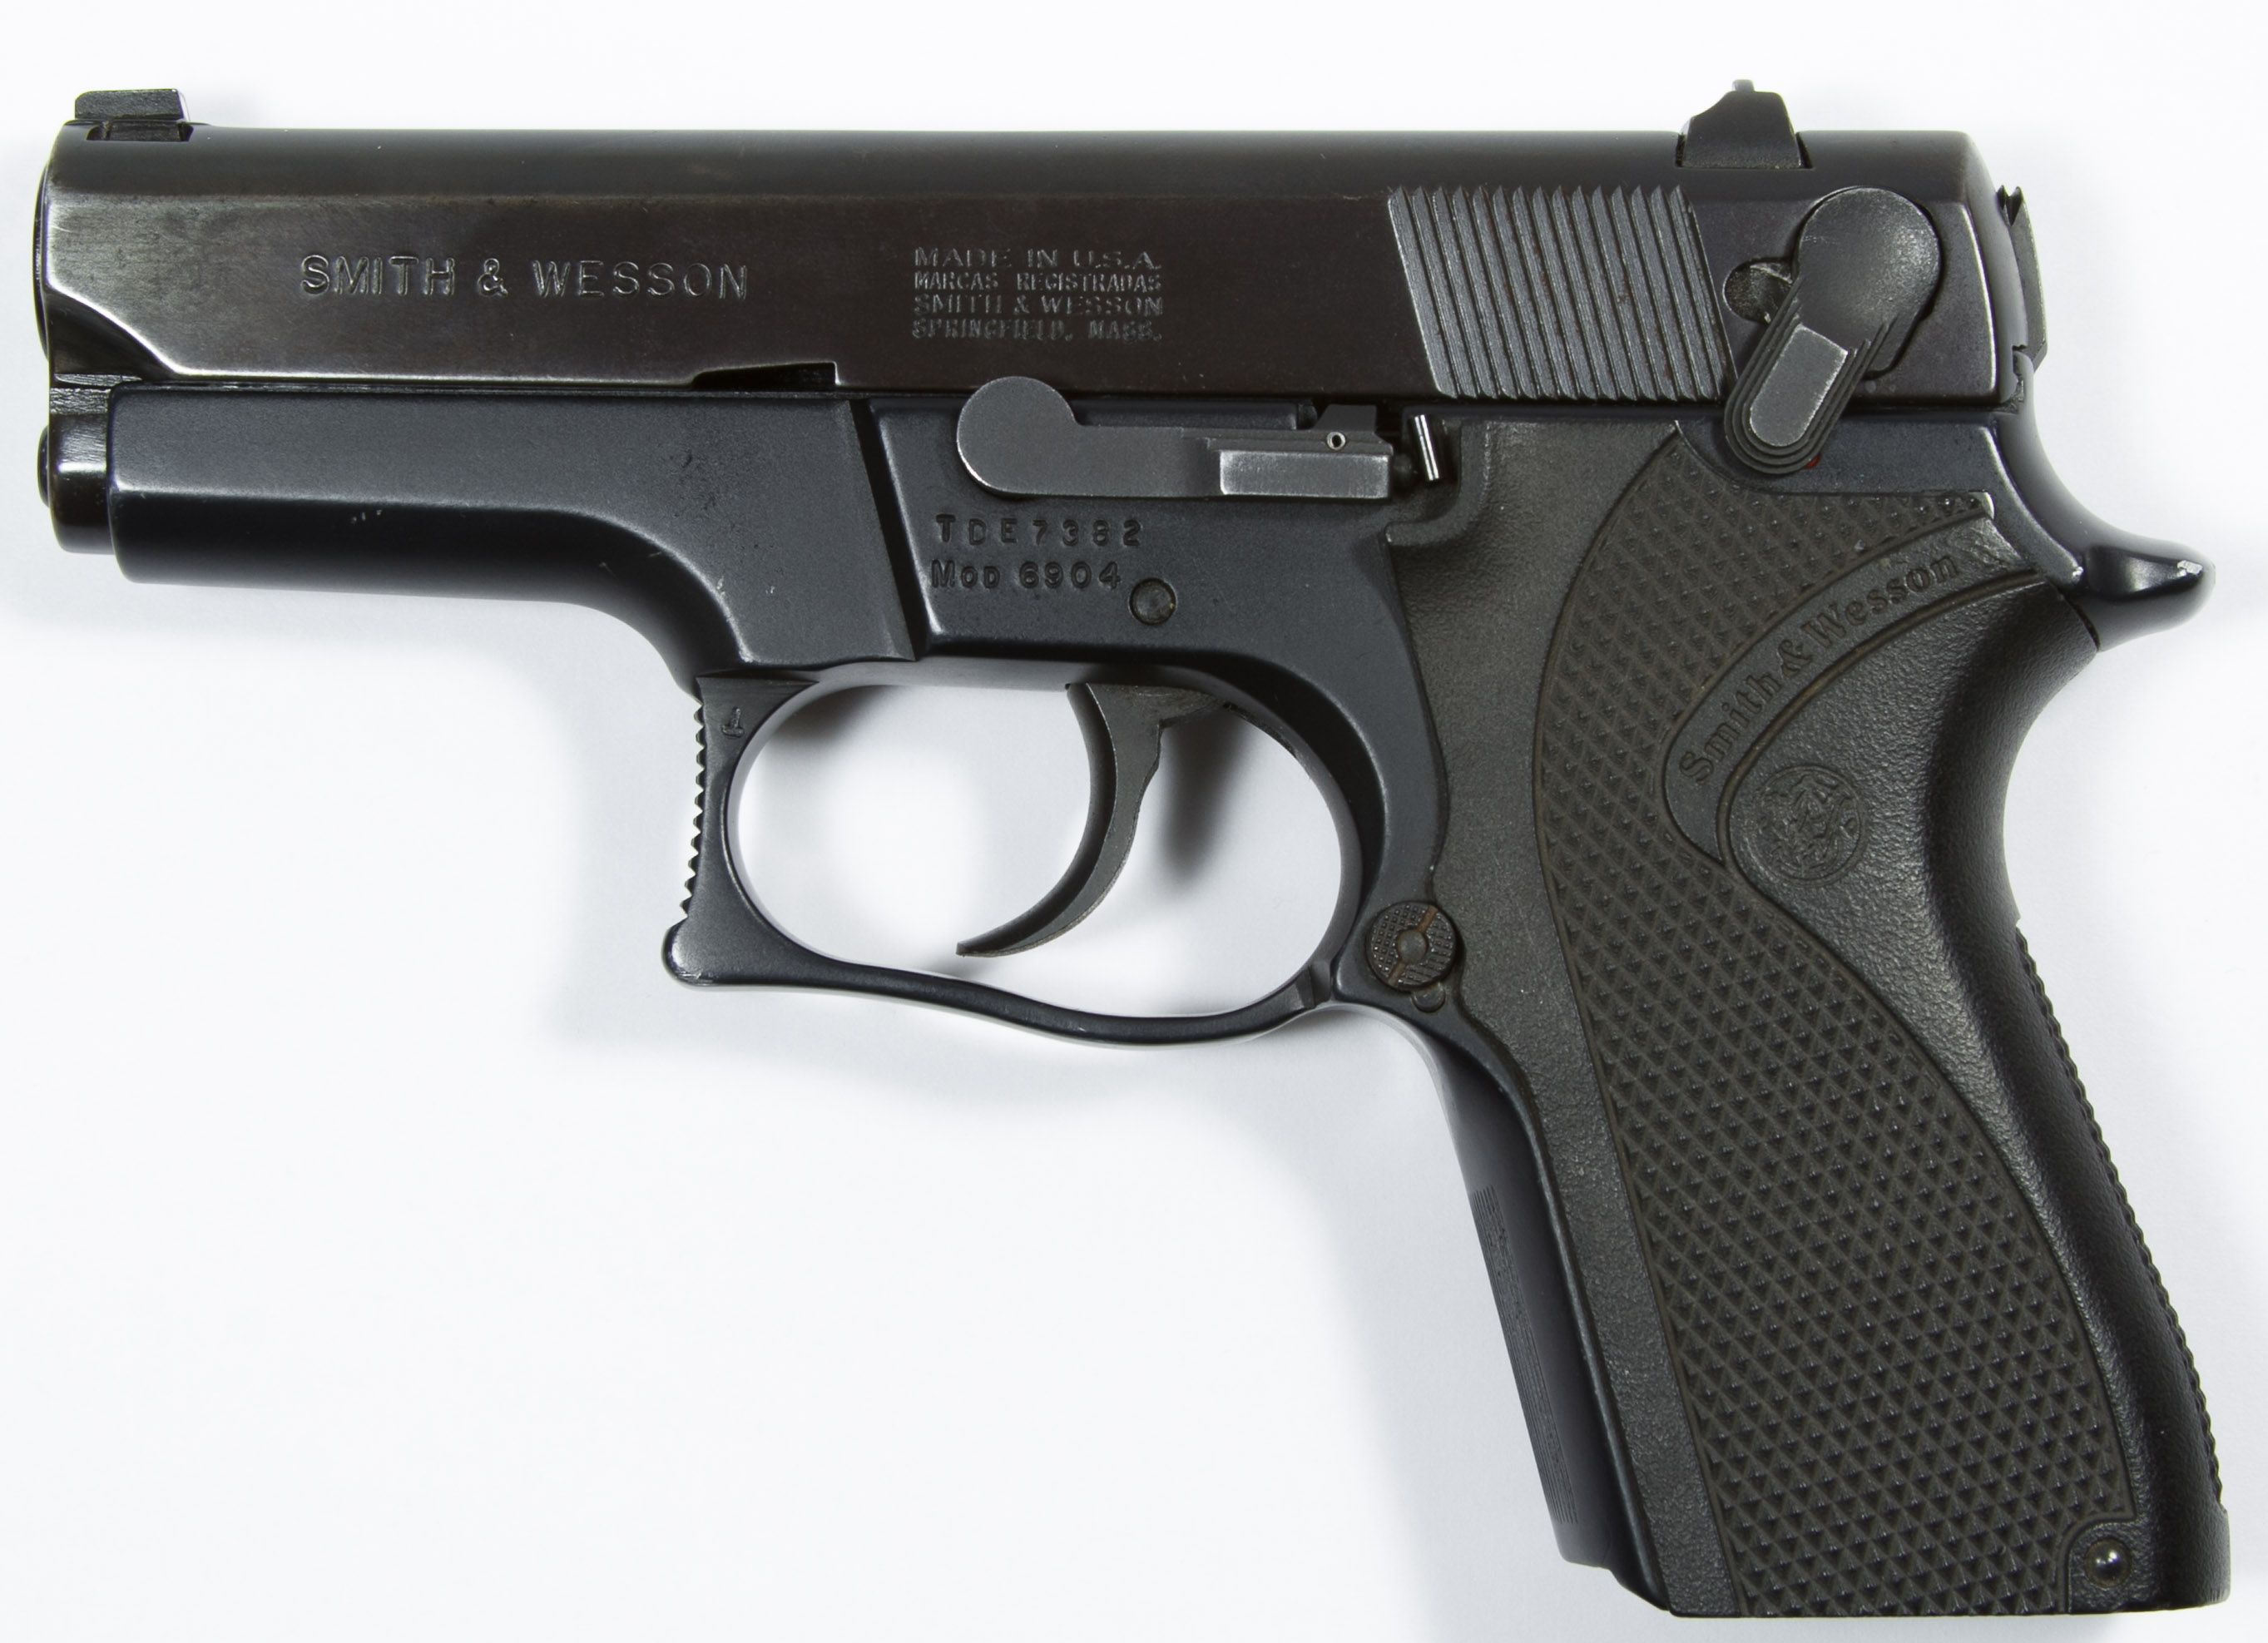 Lot 311: Smith & Wesson Model 6904 9mm Semi-Automatic Pistol (Serial ...